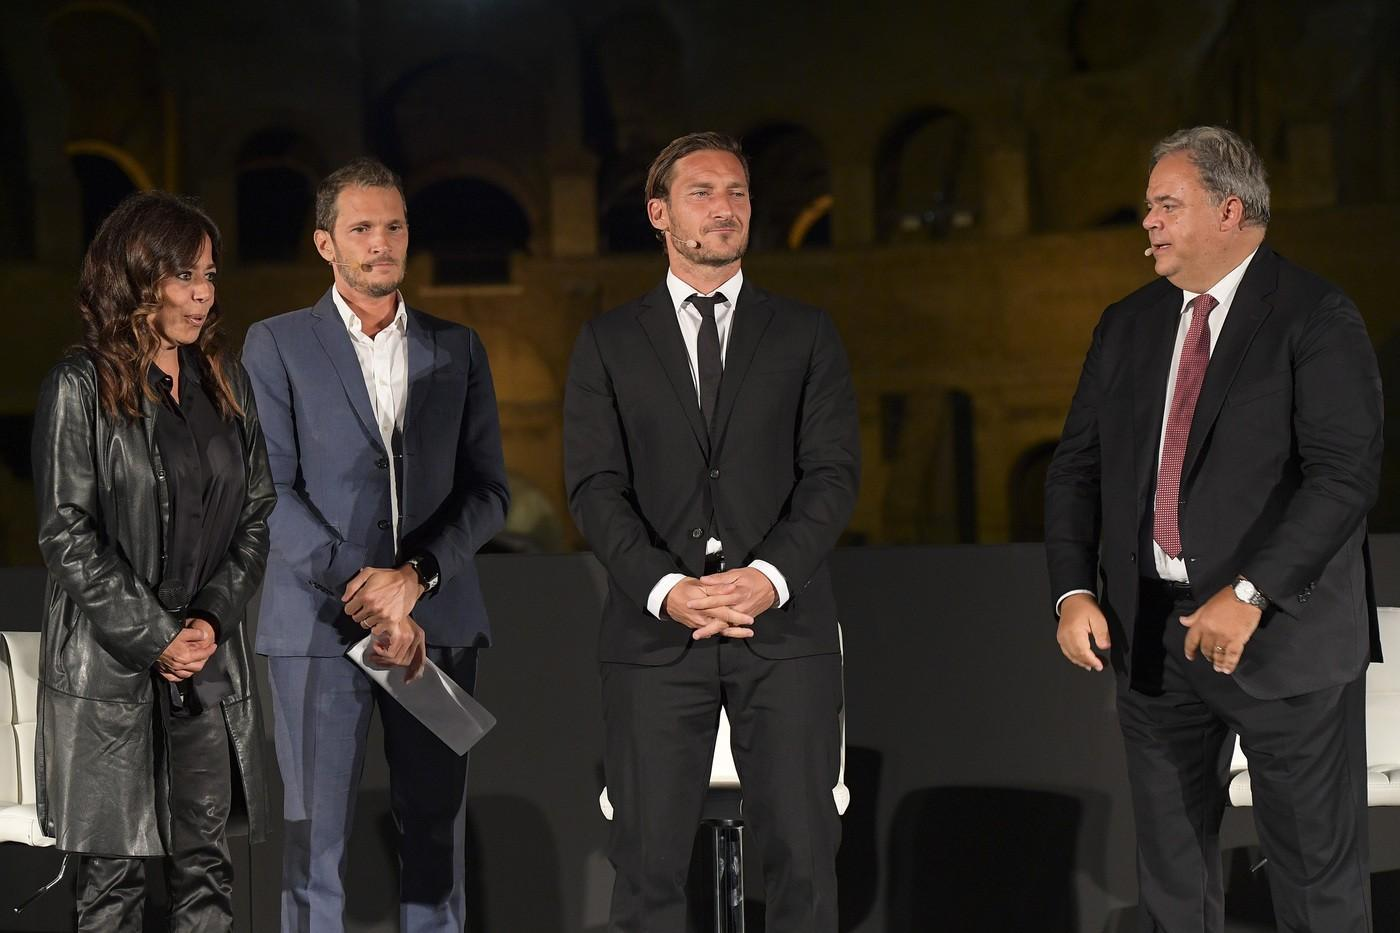 L'evento al Colosseo: Totti come un film©LaPresse